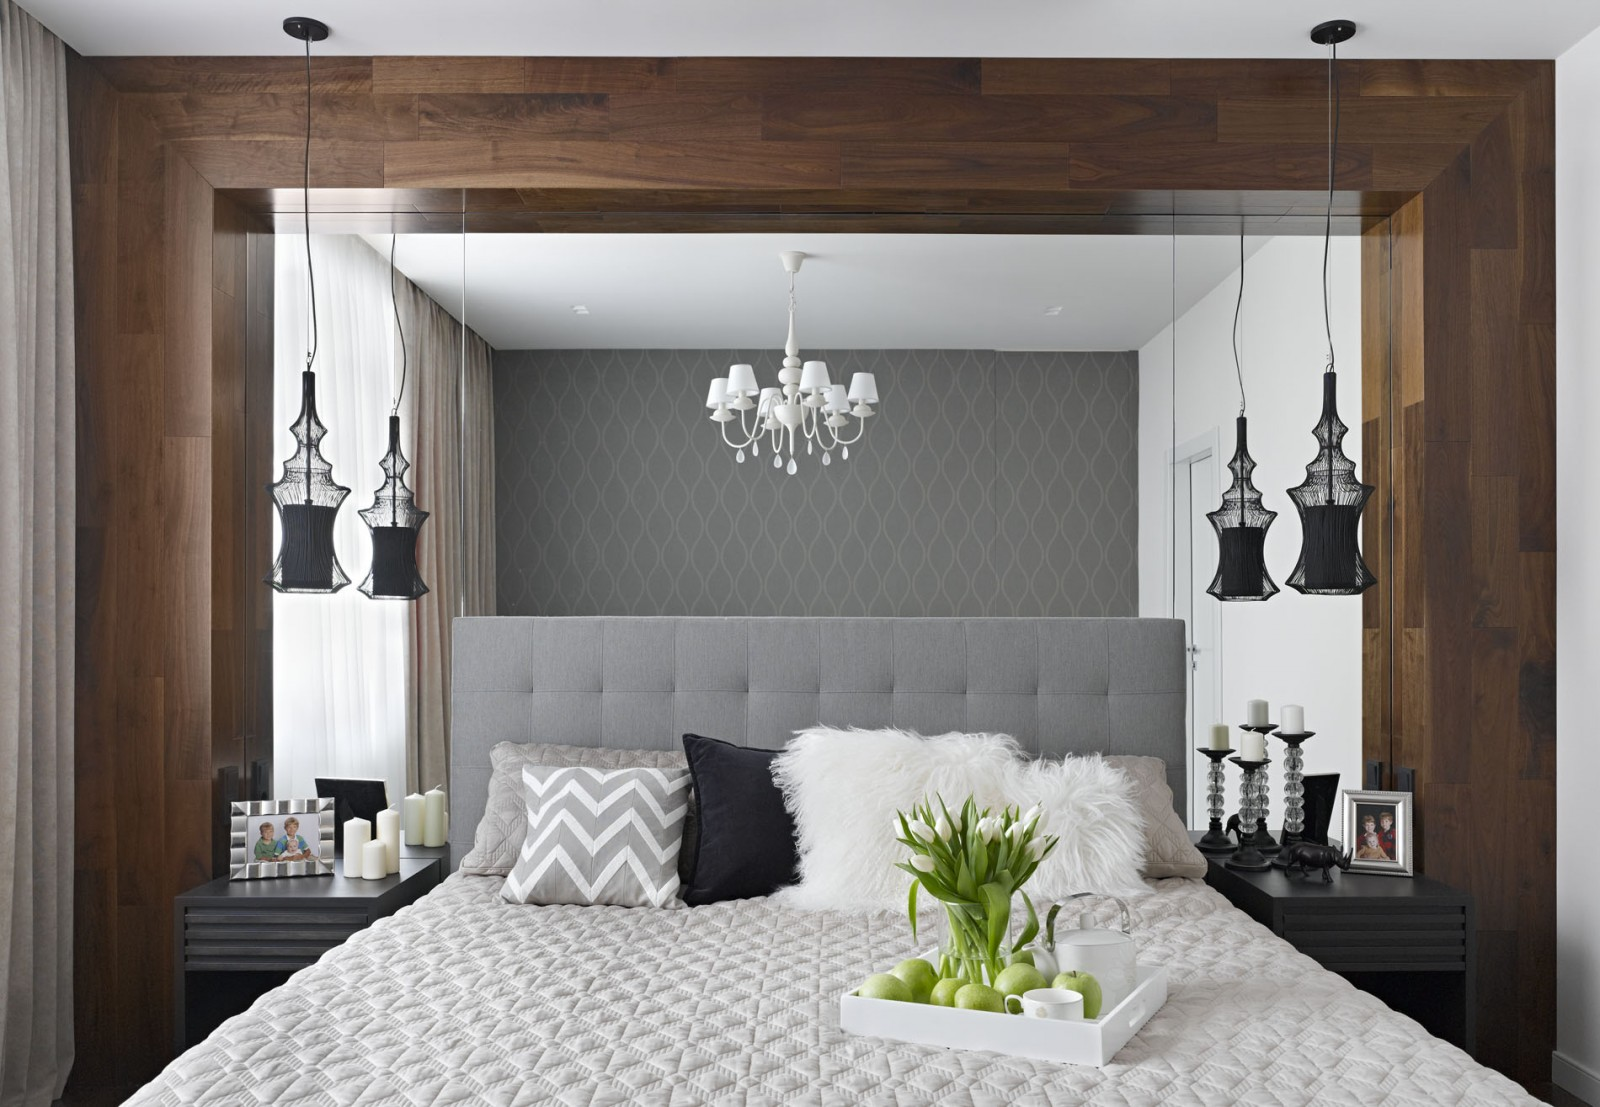 Amazing bedroom ideas from Alexandra Fedorova